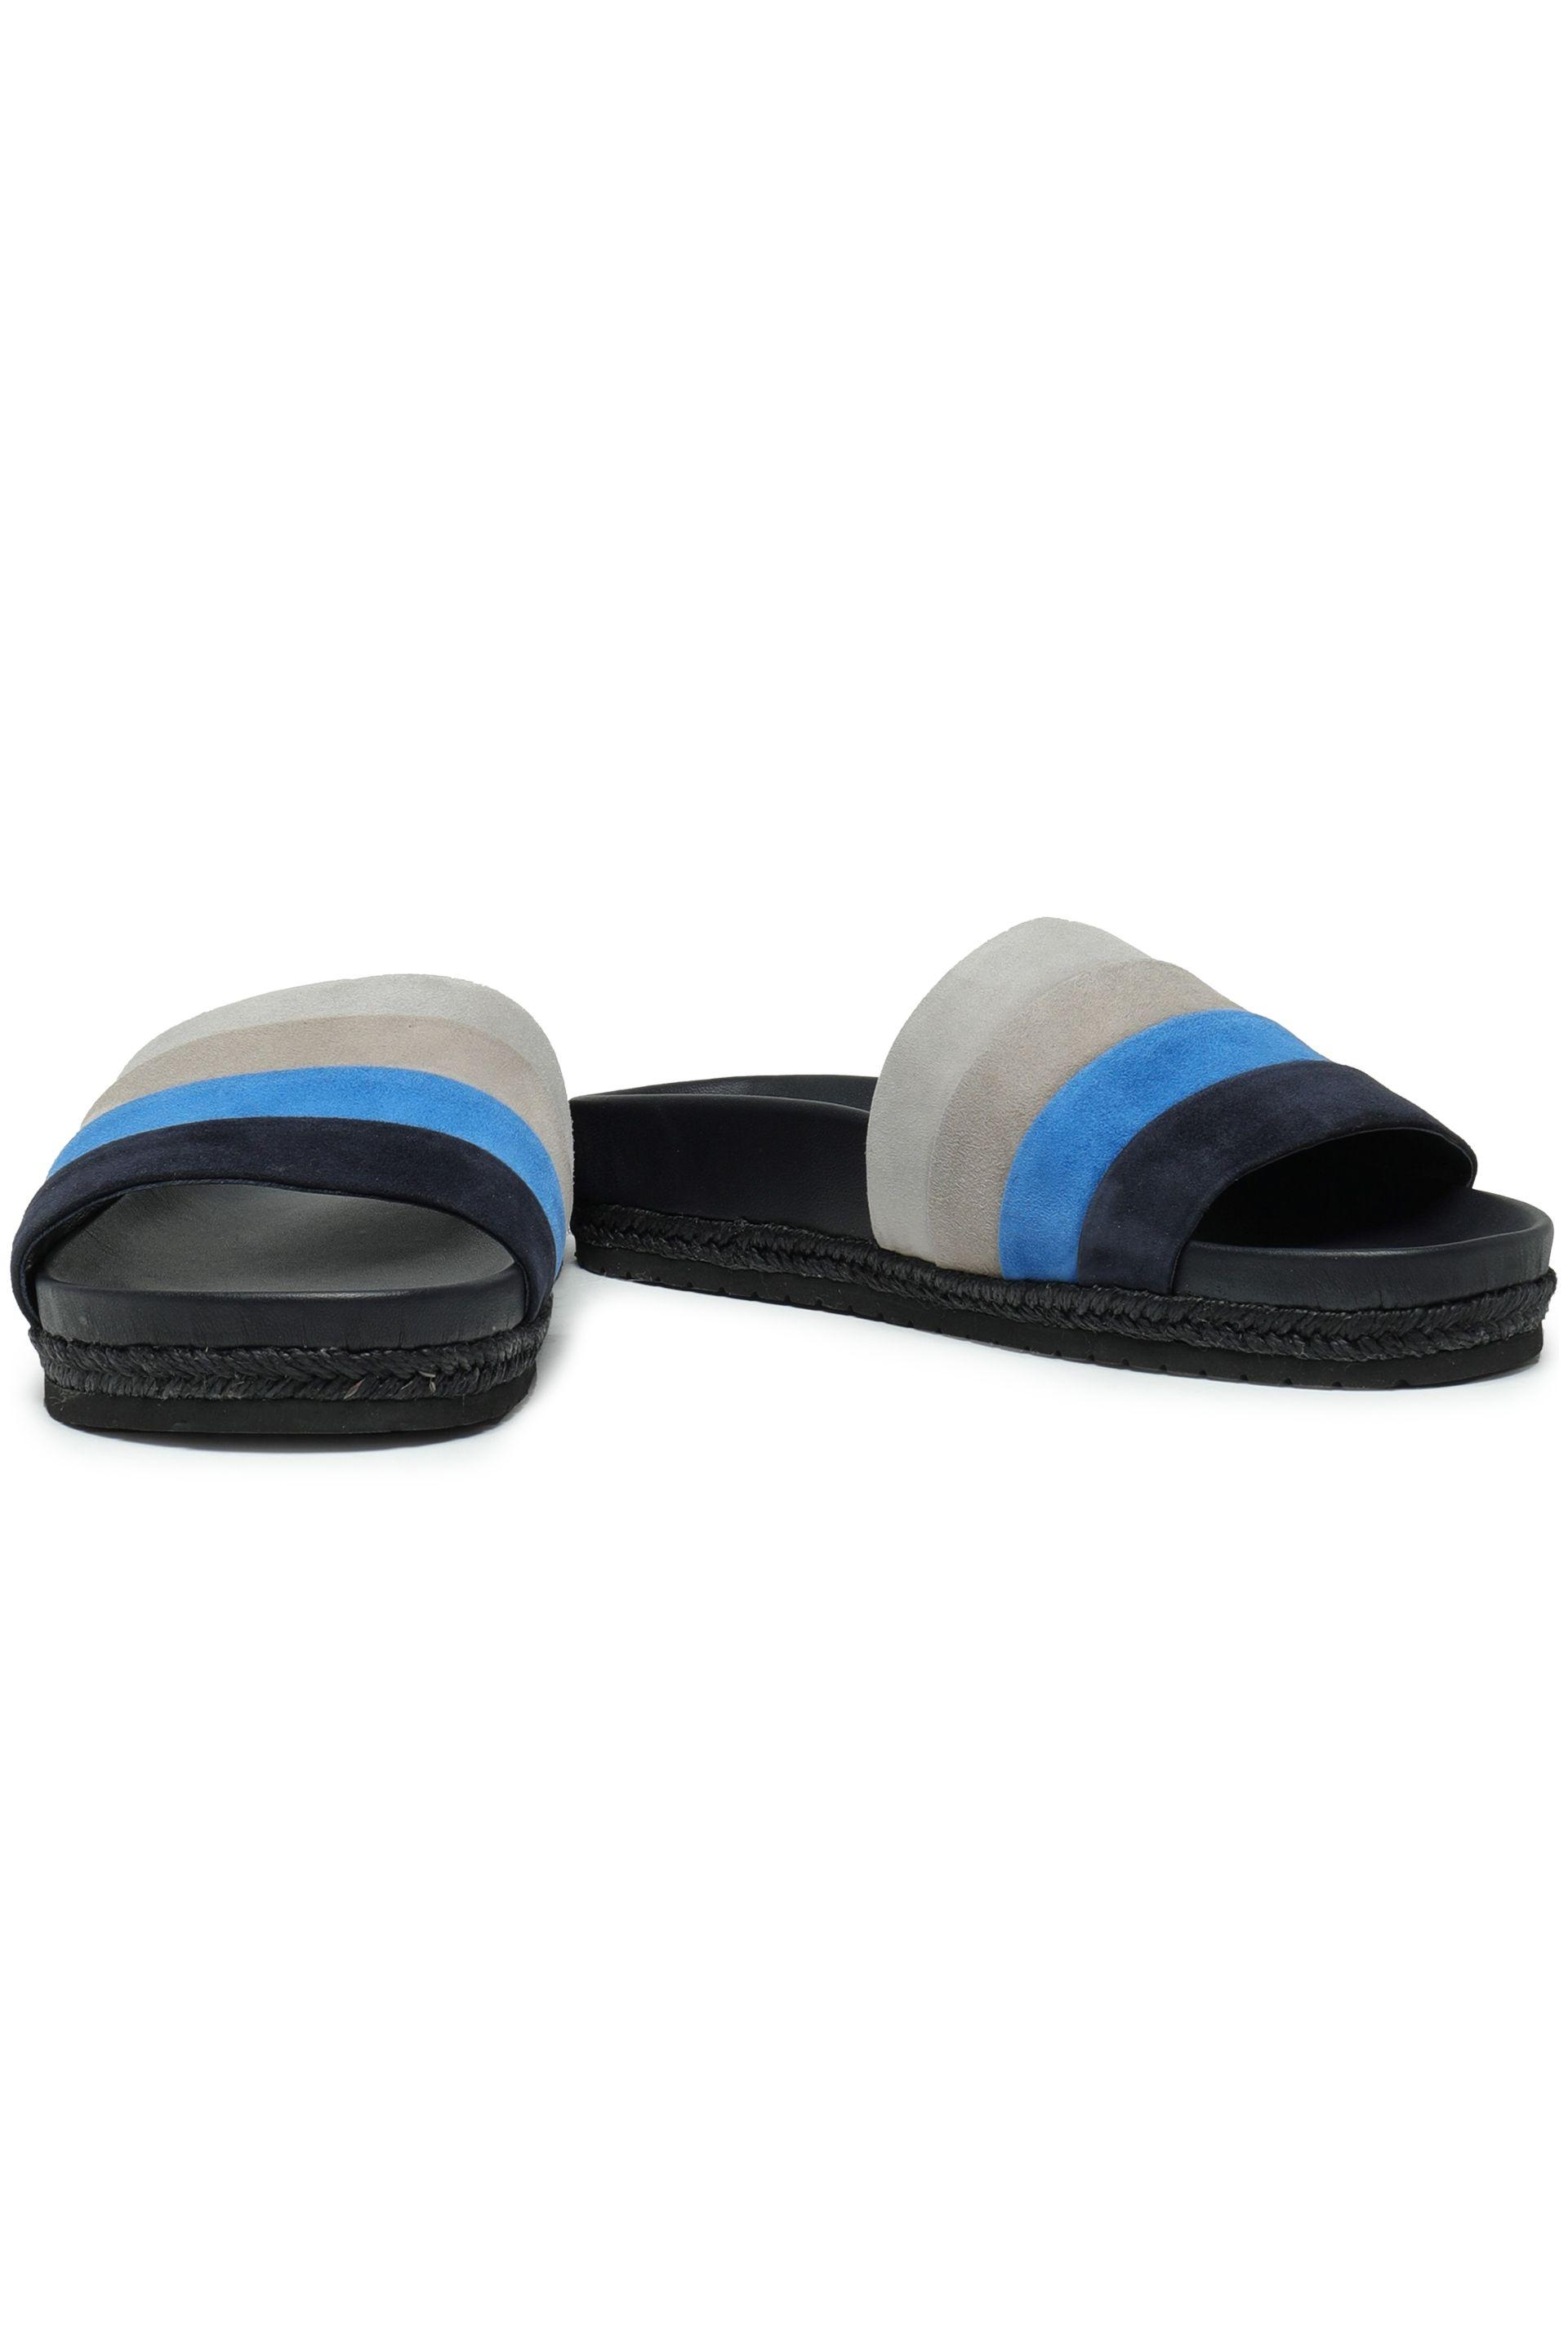 cad6285d413ab Vince - Blue Striped Suede Slides - Lyst. View fullscreen